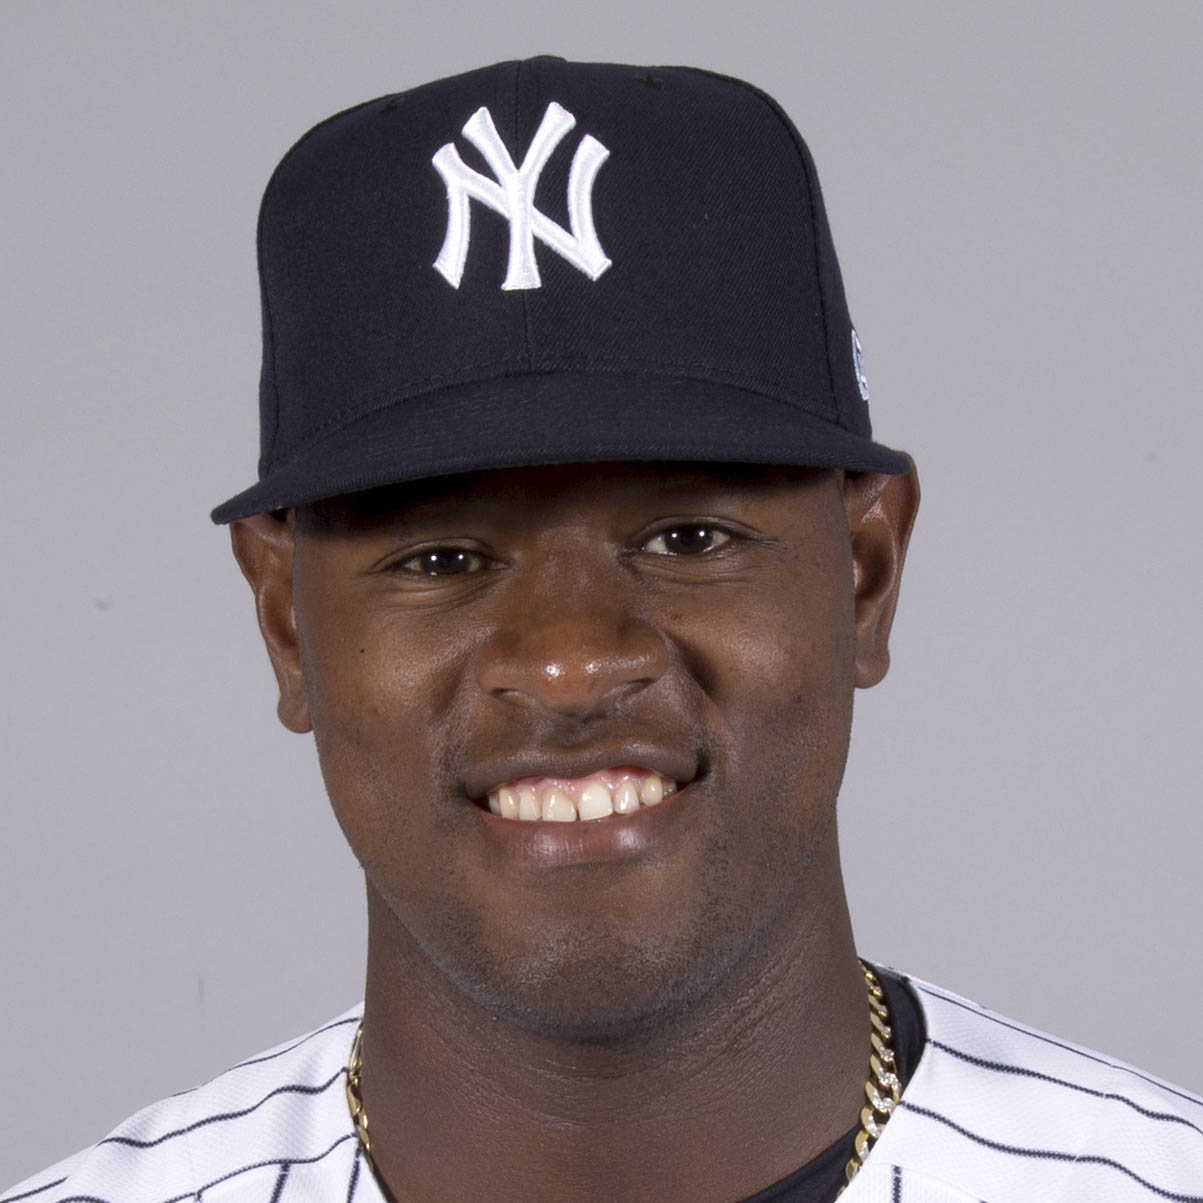 Luis Severino (R) Headshot